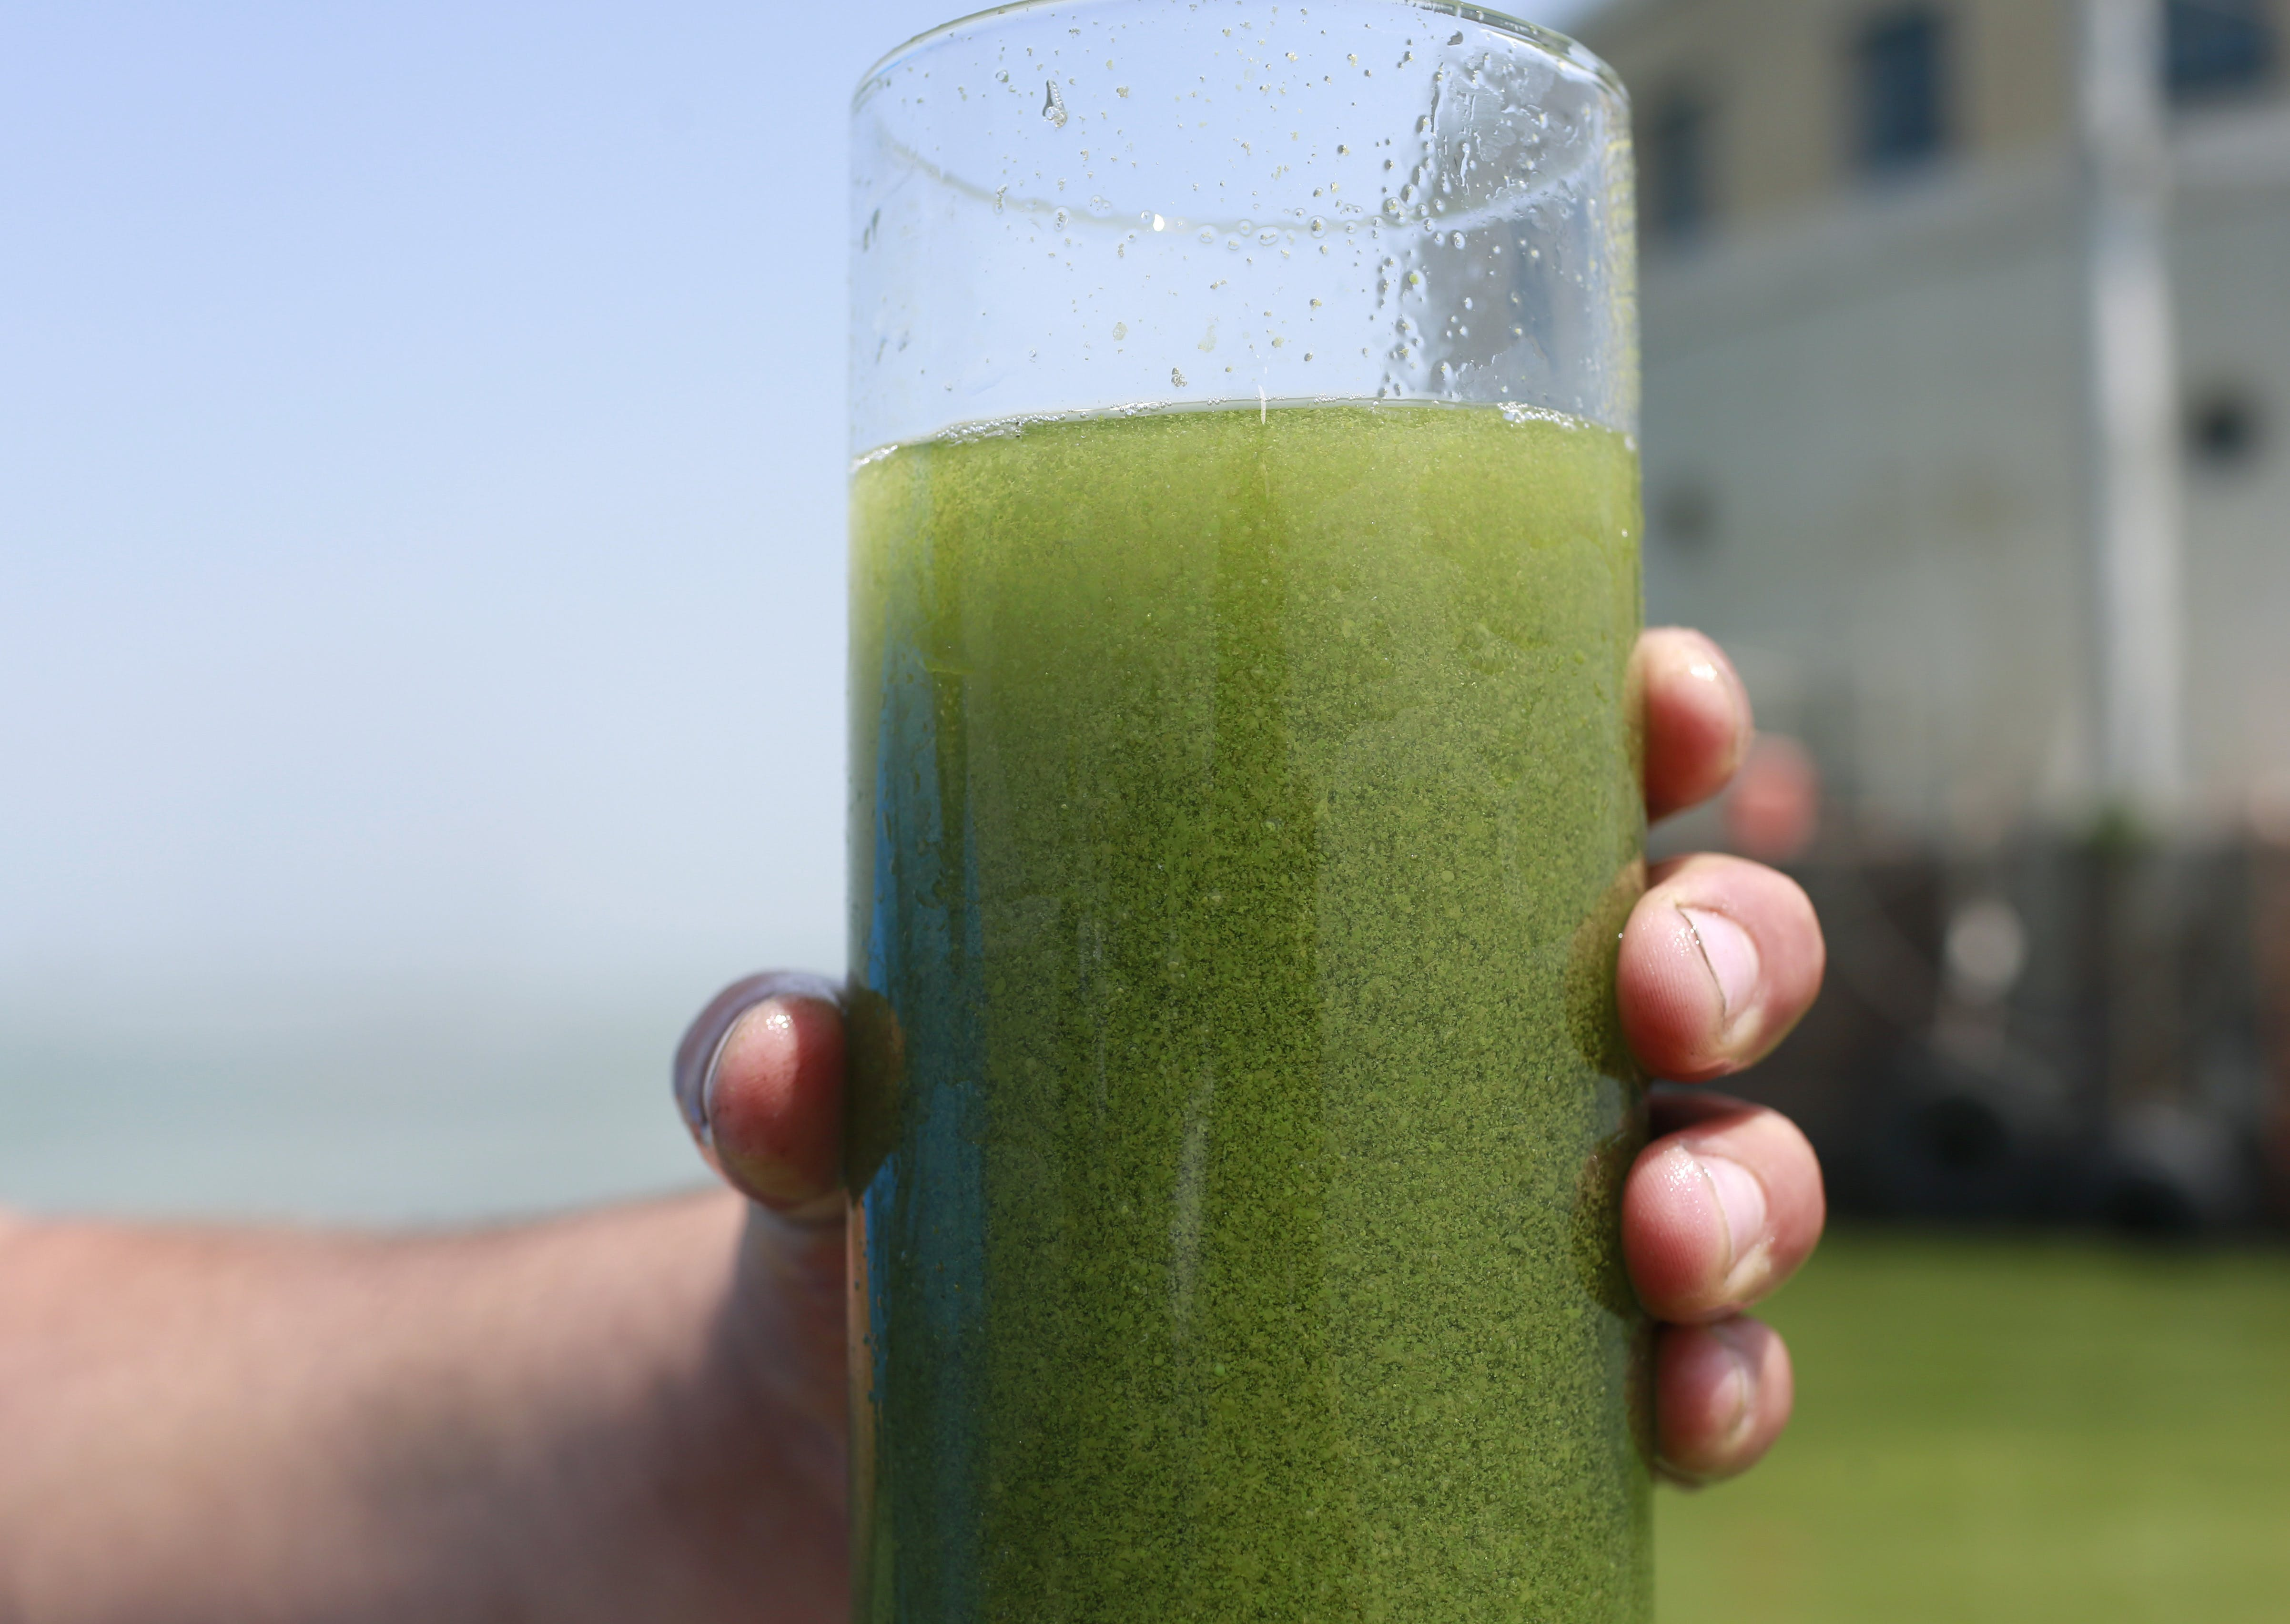 """FILE - In this Aug. 3, 2014 file photo, a sample glass of Lake Erie water is photographed near the City of Toledo water intake crib on Lake Erie, off the shore of Curtice, Ohio. Scientists are predicting a """"significant"""" algae bloom will form this summer on western Lake Erie, a continuing health hazard in a region where algae toxins forced a temporary tap water shutdown in 2014. (AP Photo/Haraz N. Ghanbari, File)"""